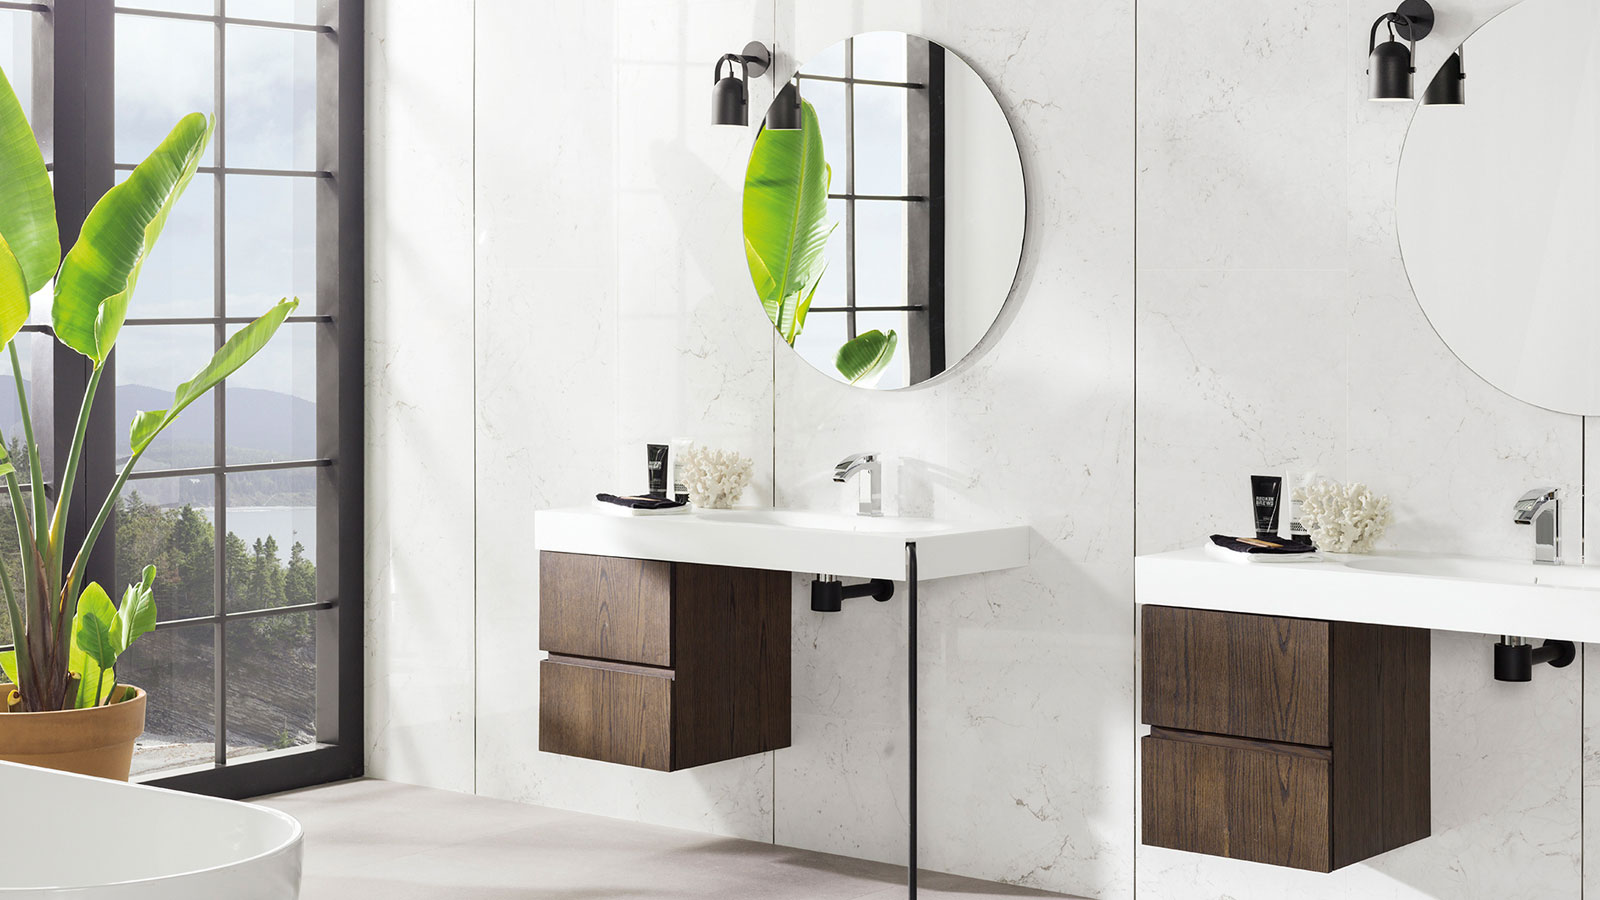 Fontana from Porcelanosa: a ceramic collection based on Carrara marble